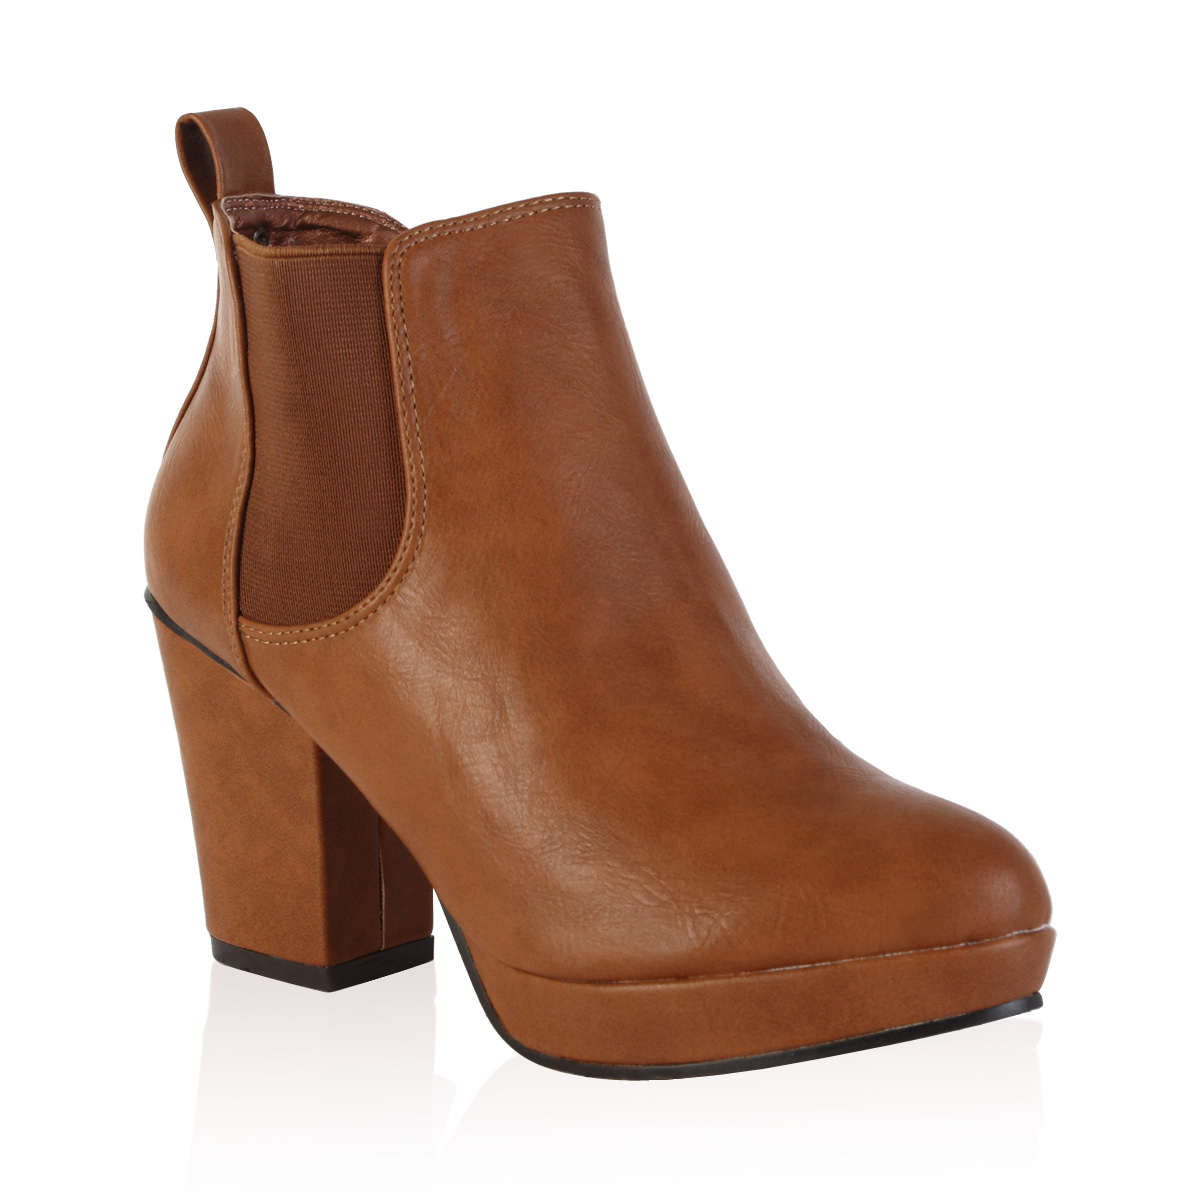 98c womens chelsea boots platform heel shoes size 36 41 carre ebay. Black Bedroom Furniture Sets. Home Design Ideas